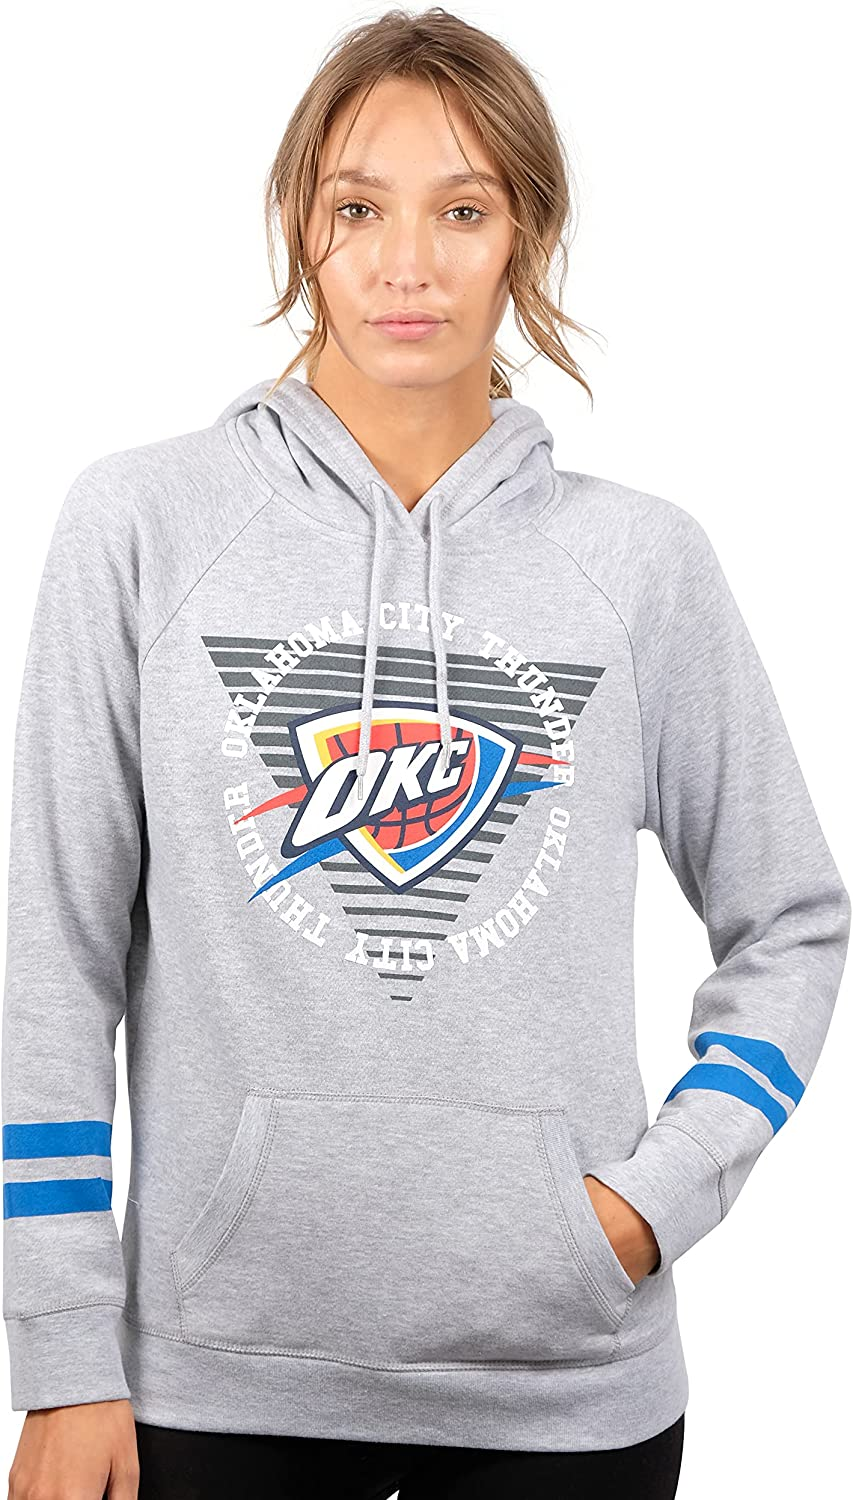 Ultra Game womens Soft Fleece Va Max 43% OFF Max 51% OFF With Hoodie Sweatshirt Pullover